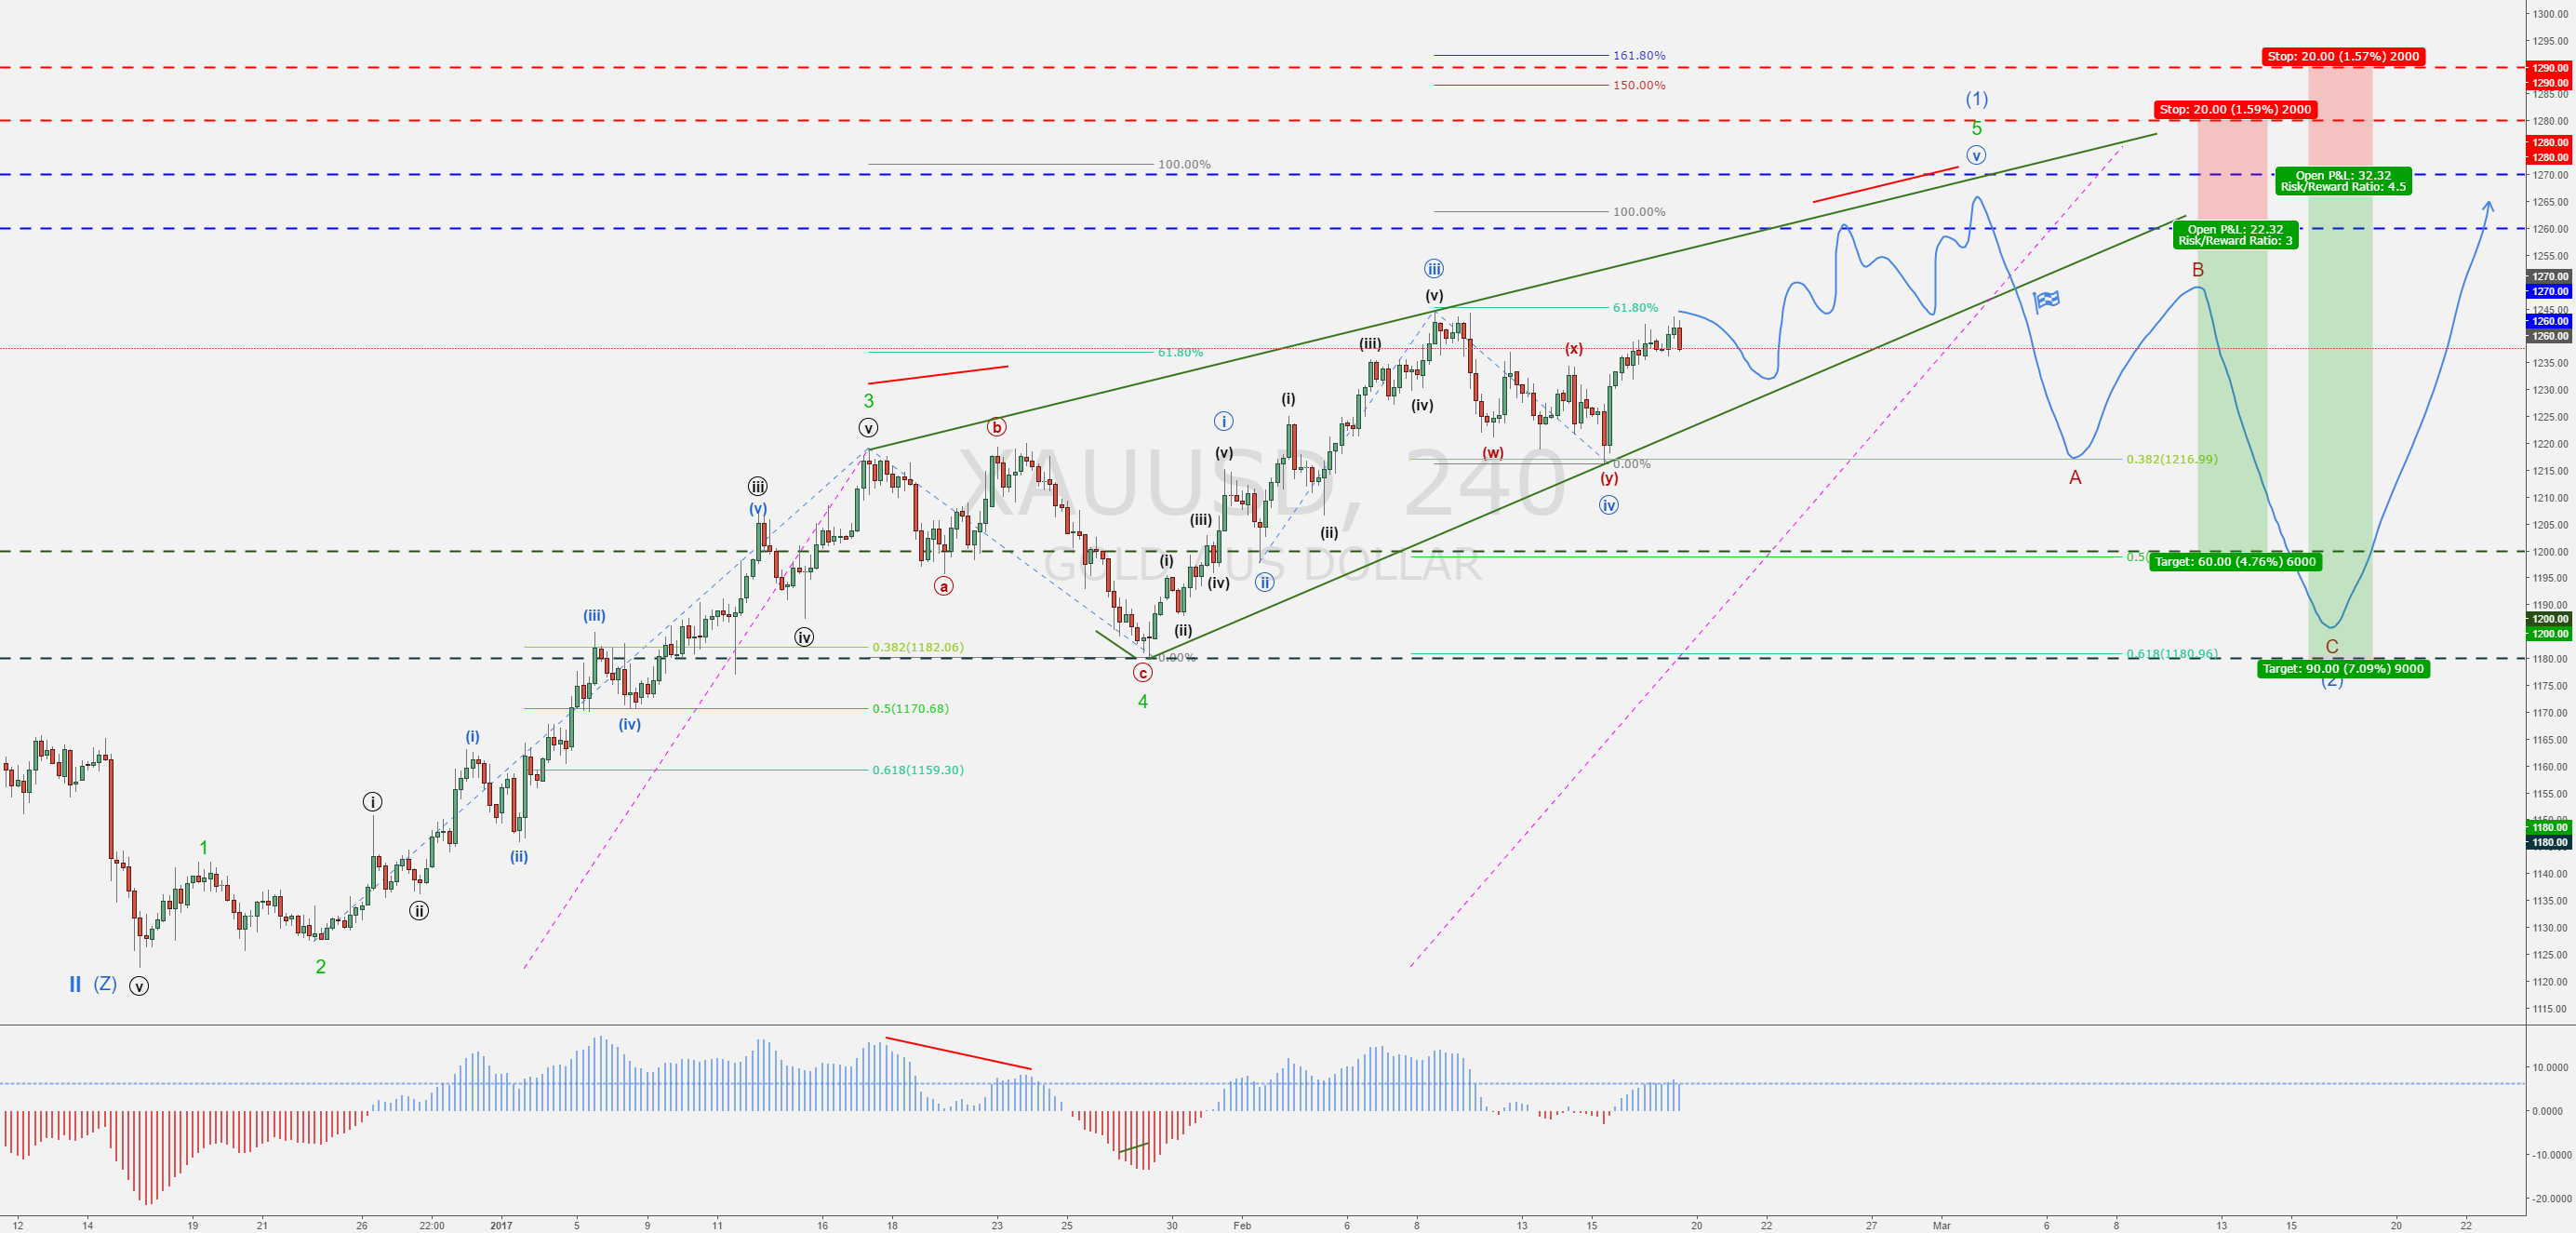 GOLD (XAUUSD) - Corrective ABC for Intermediate Wave 2